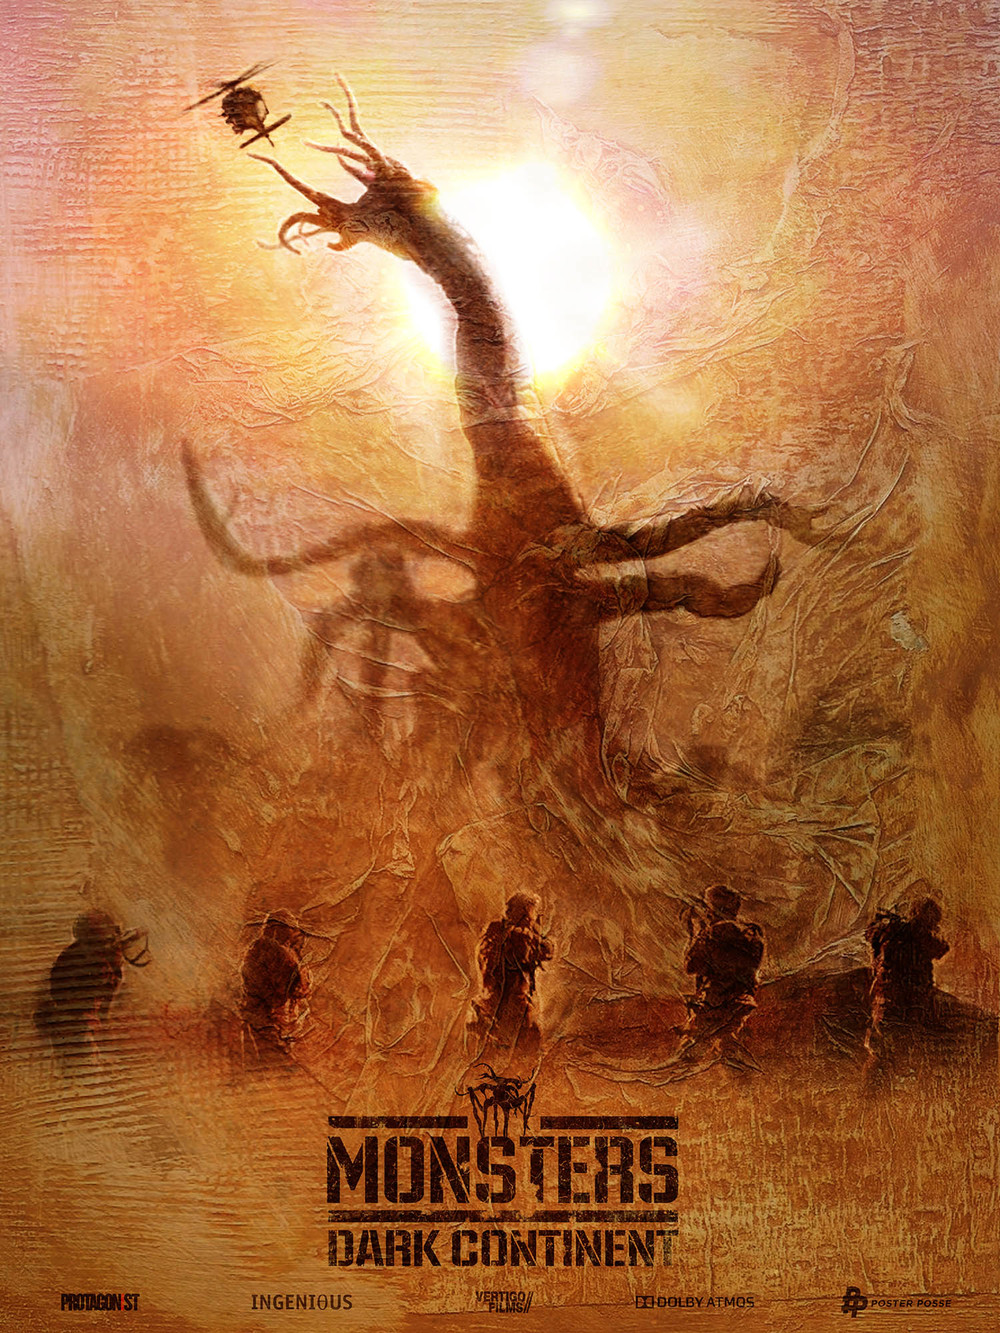 monsters_dark_continent_poster_2014_03.jpg